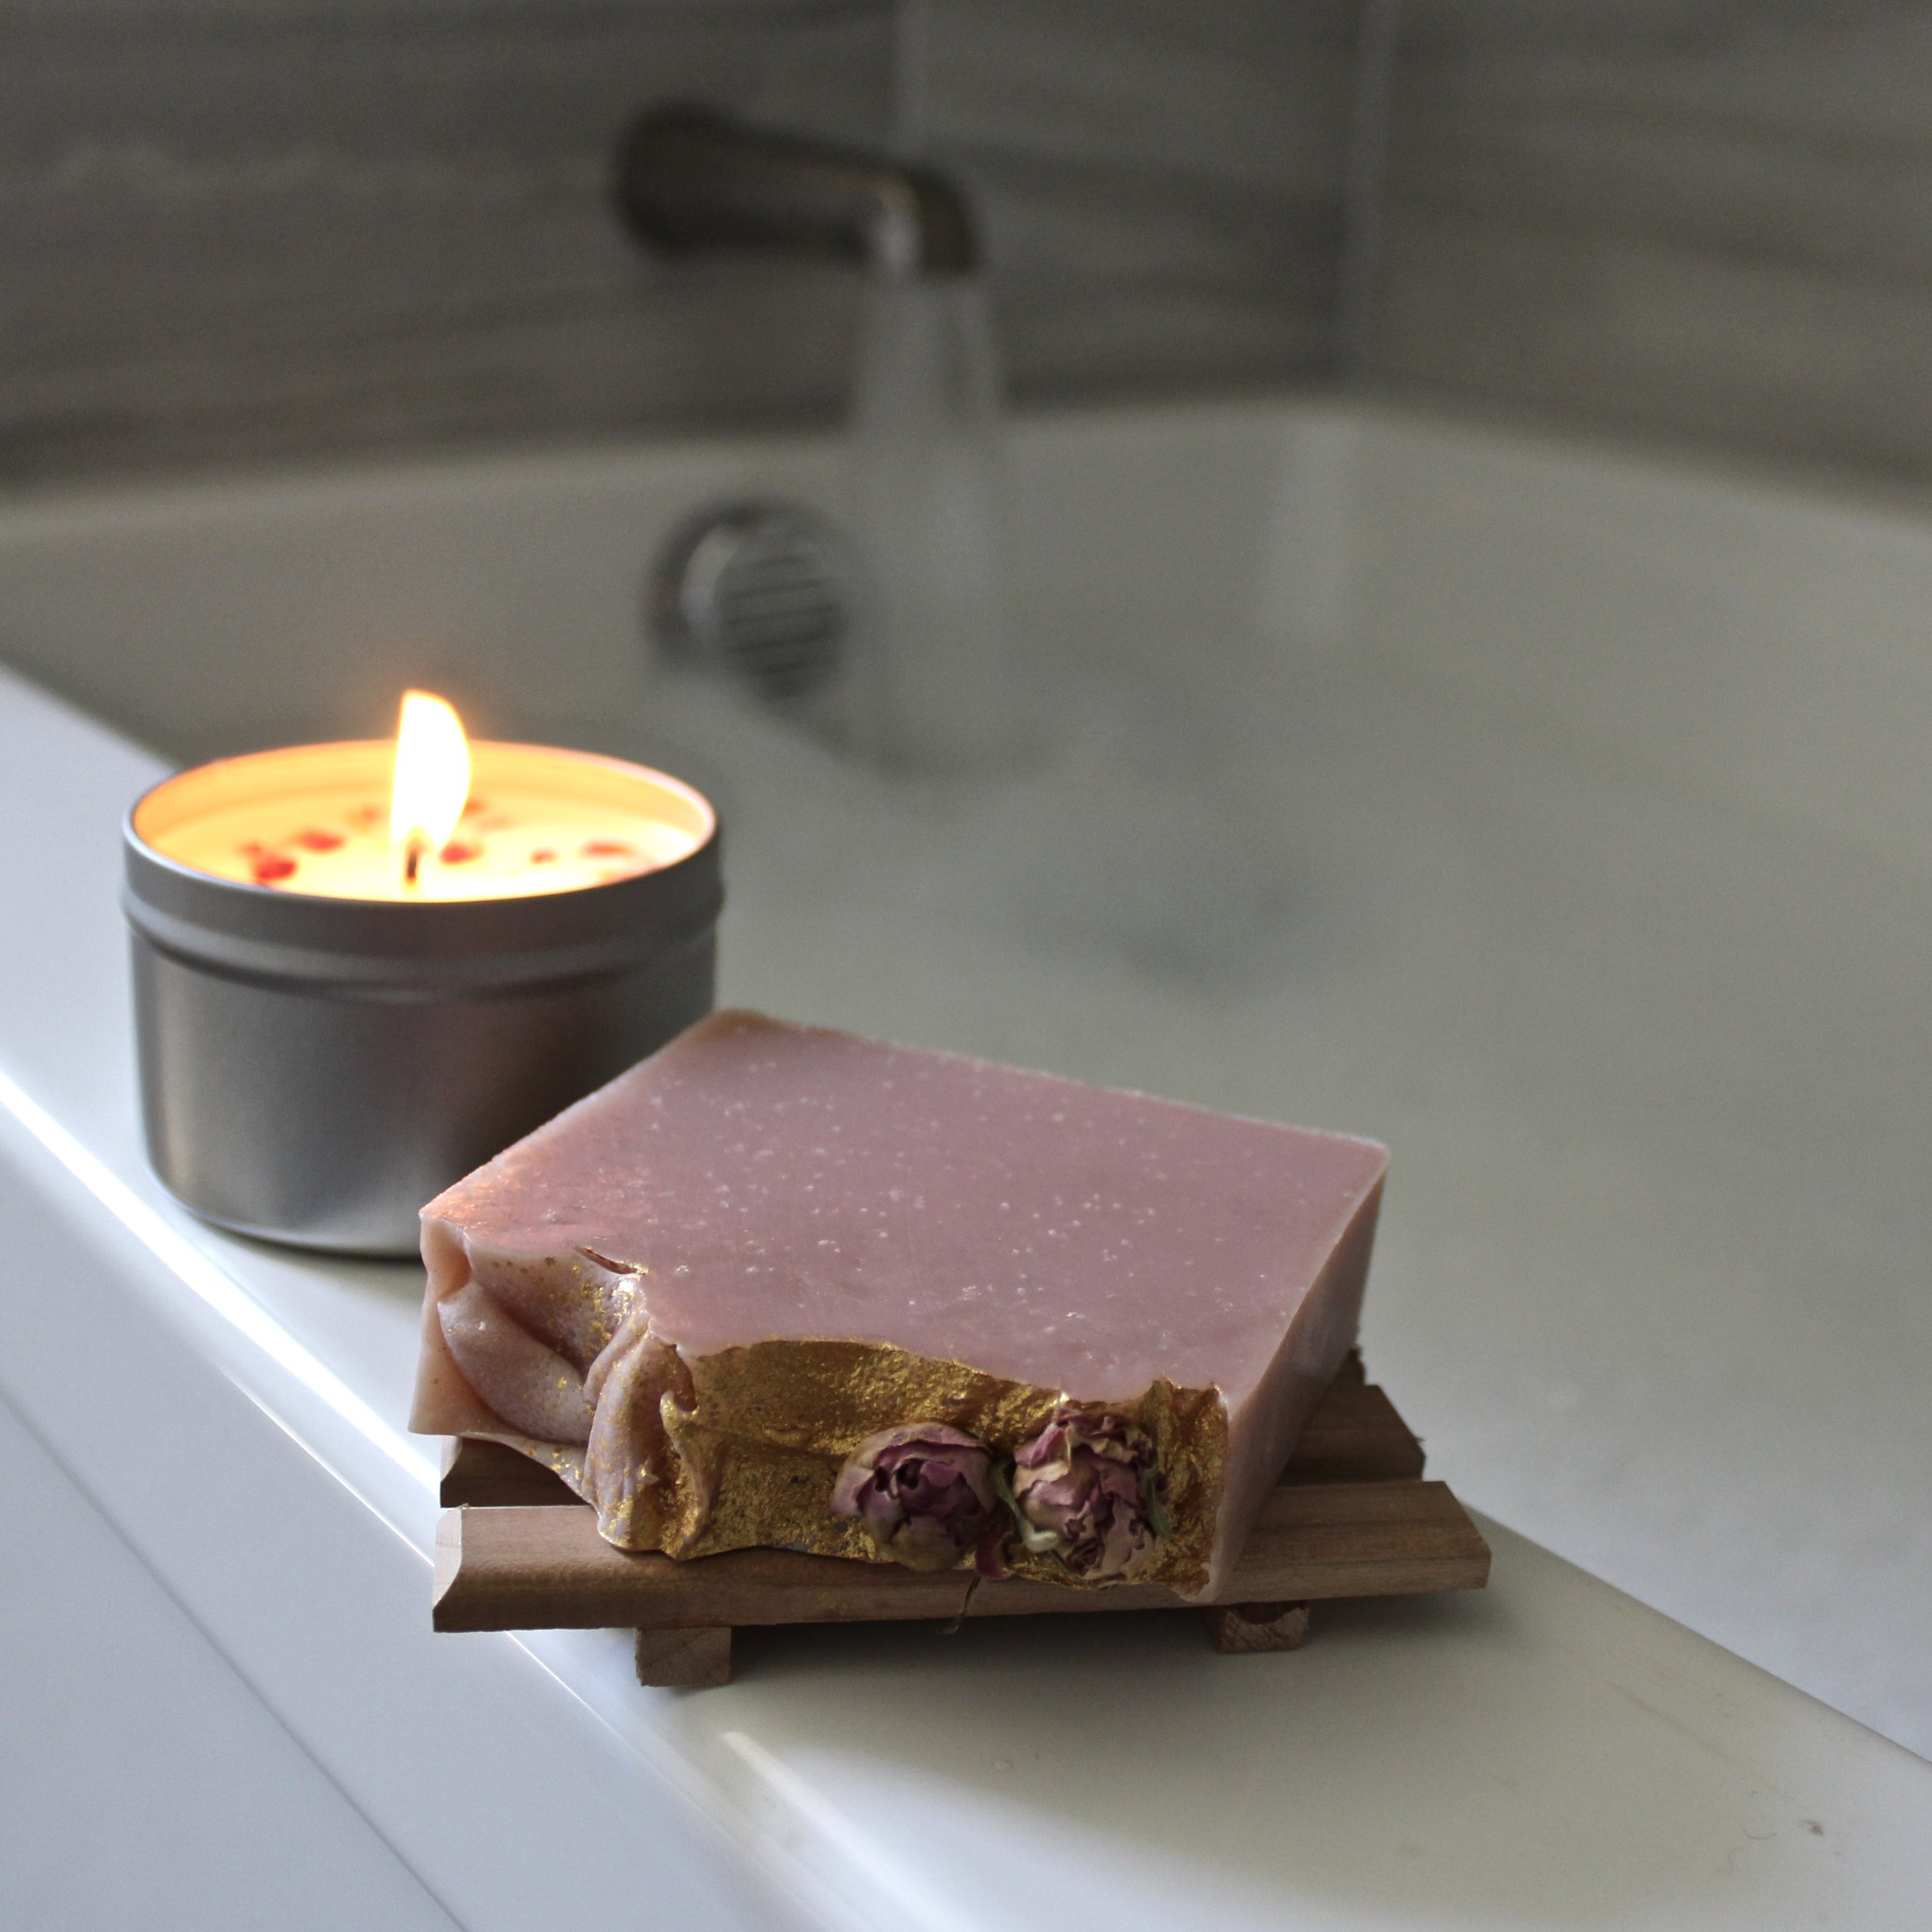 Candles help set the mood for relaxation, celebration, romance,meditation and just pure enjoyment of scent & light.